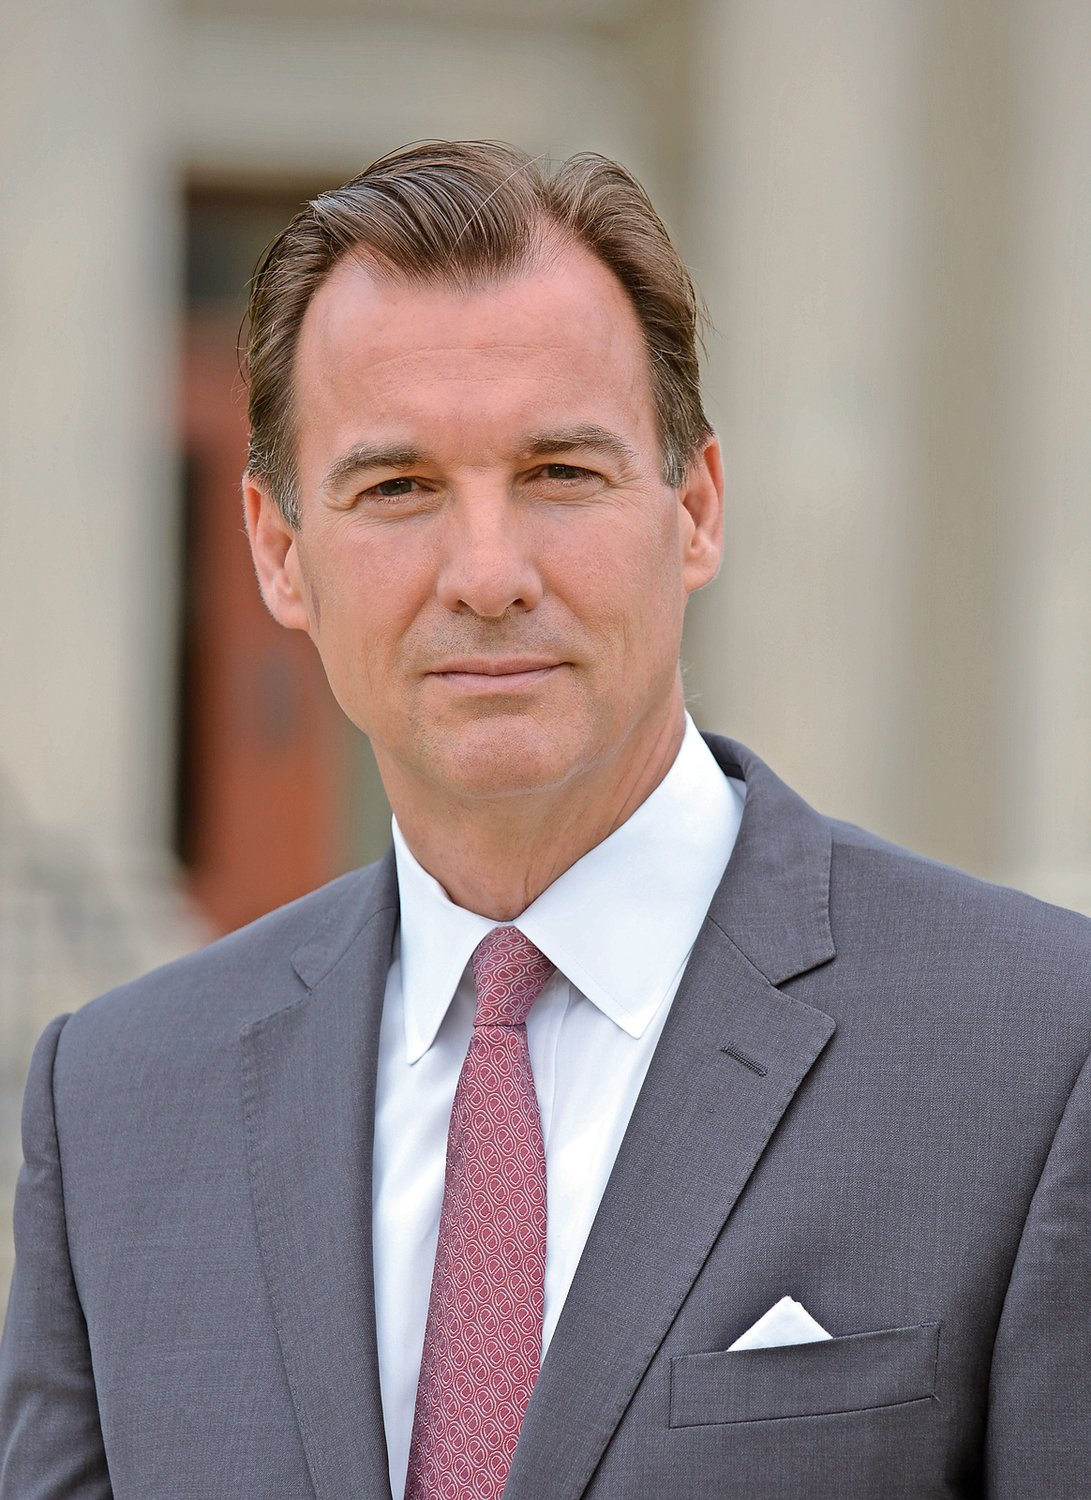 U.S. Rep. Tom Suozzi is waiting for the results from absentee ballots but believes he has won the primary.